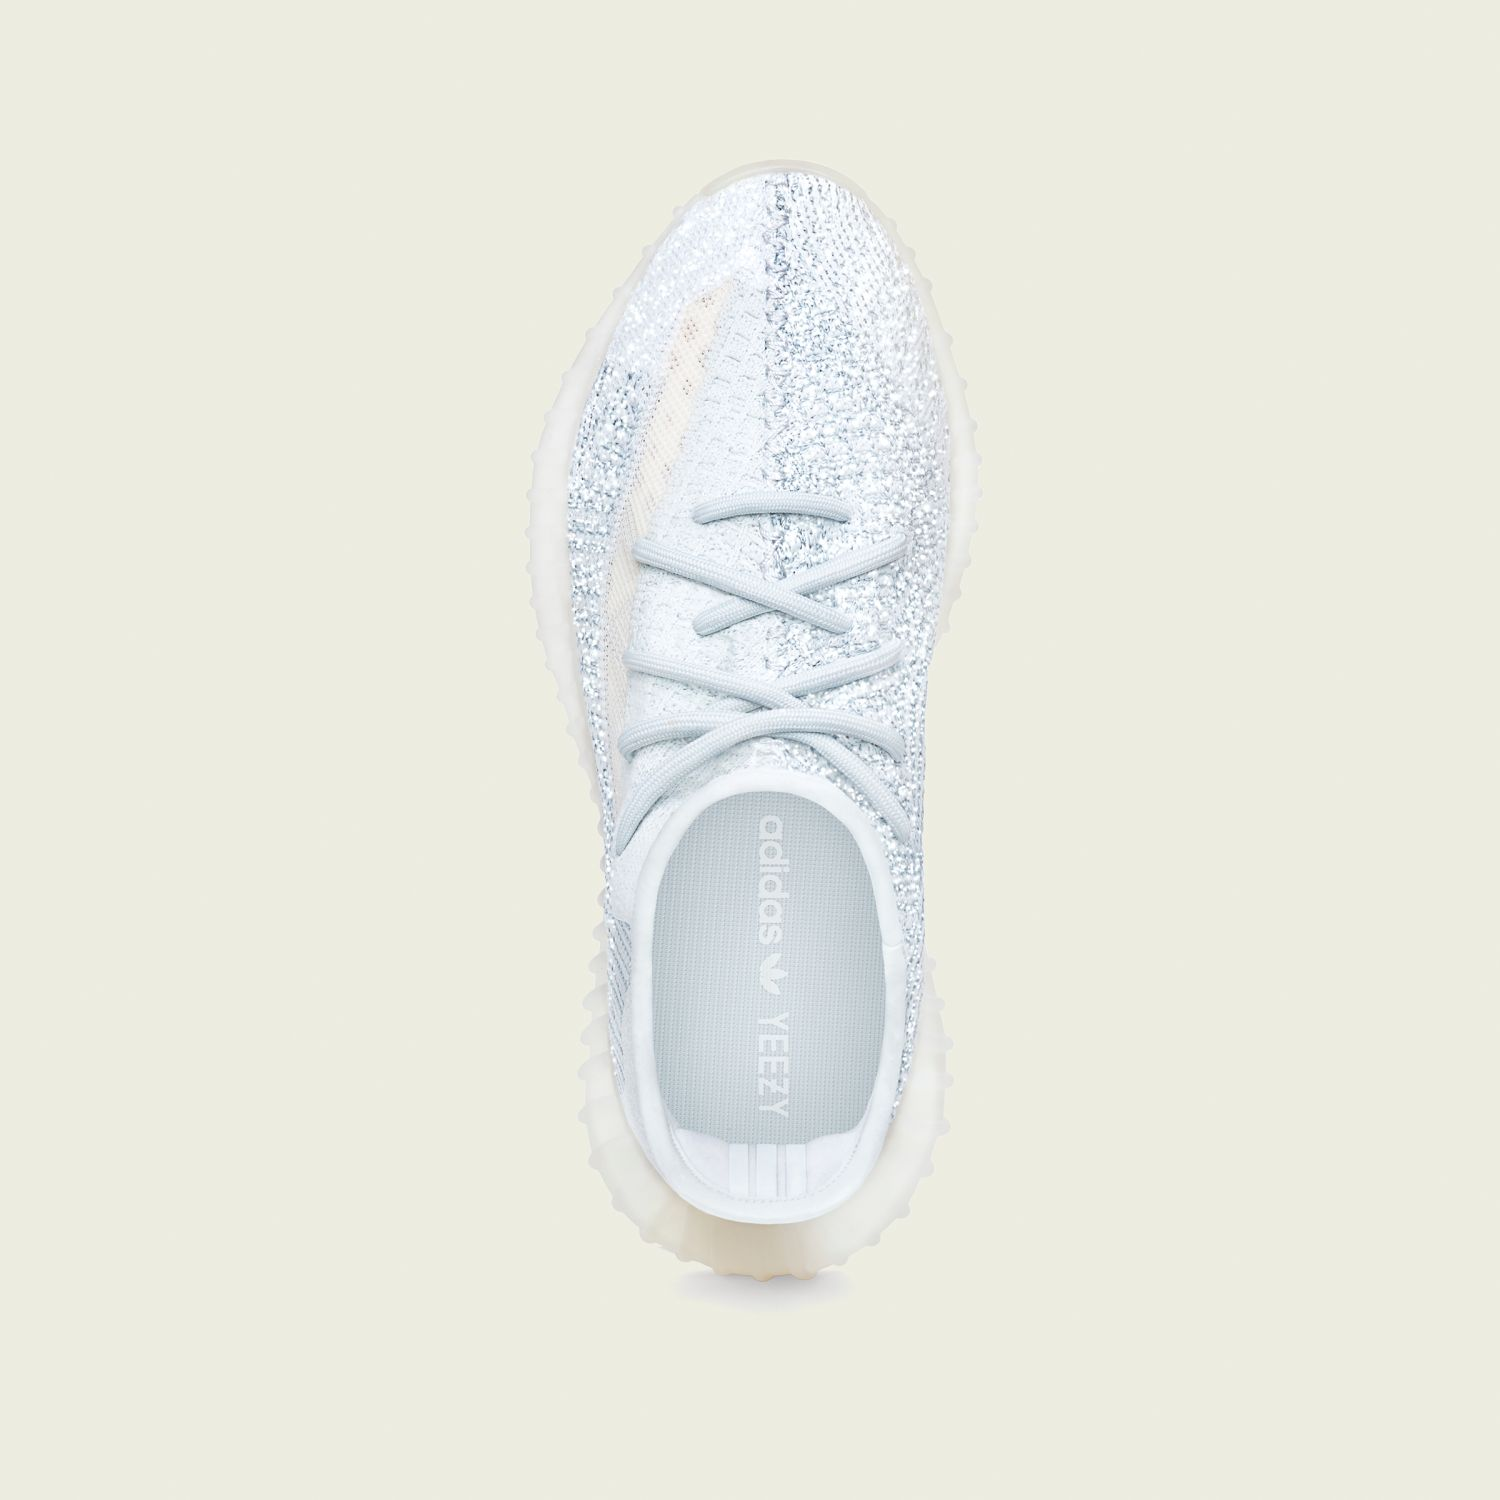 Yeezy Boost 350 V2 Cloud White (Reflective) [3]